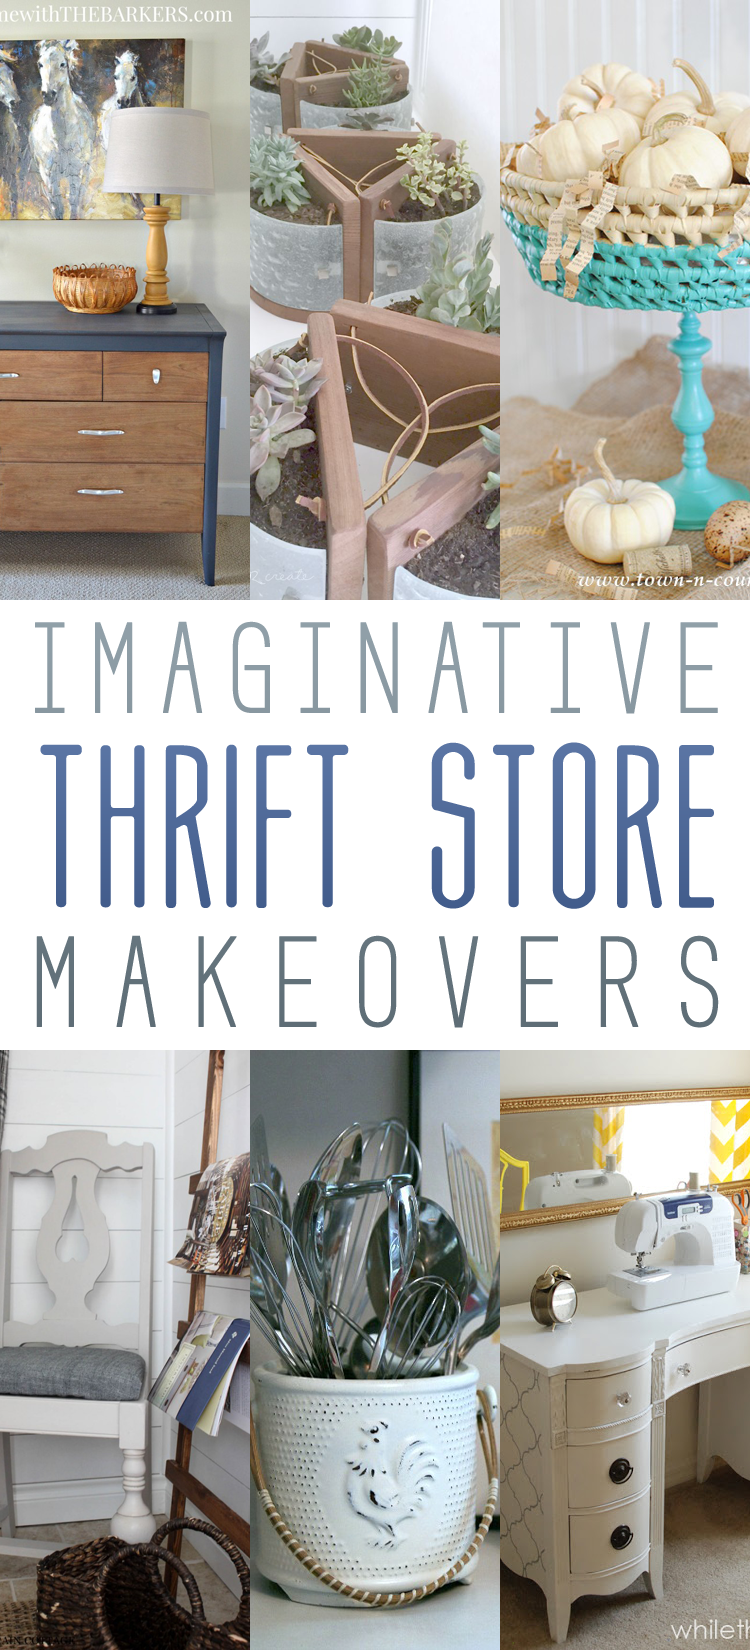 Imaginative Thrift Store Makeovers